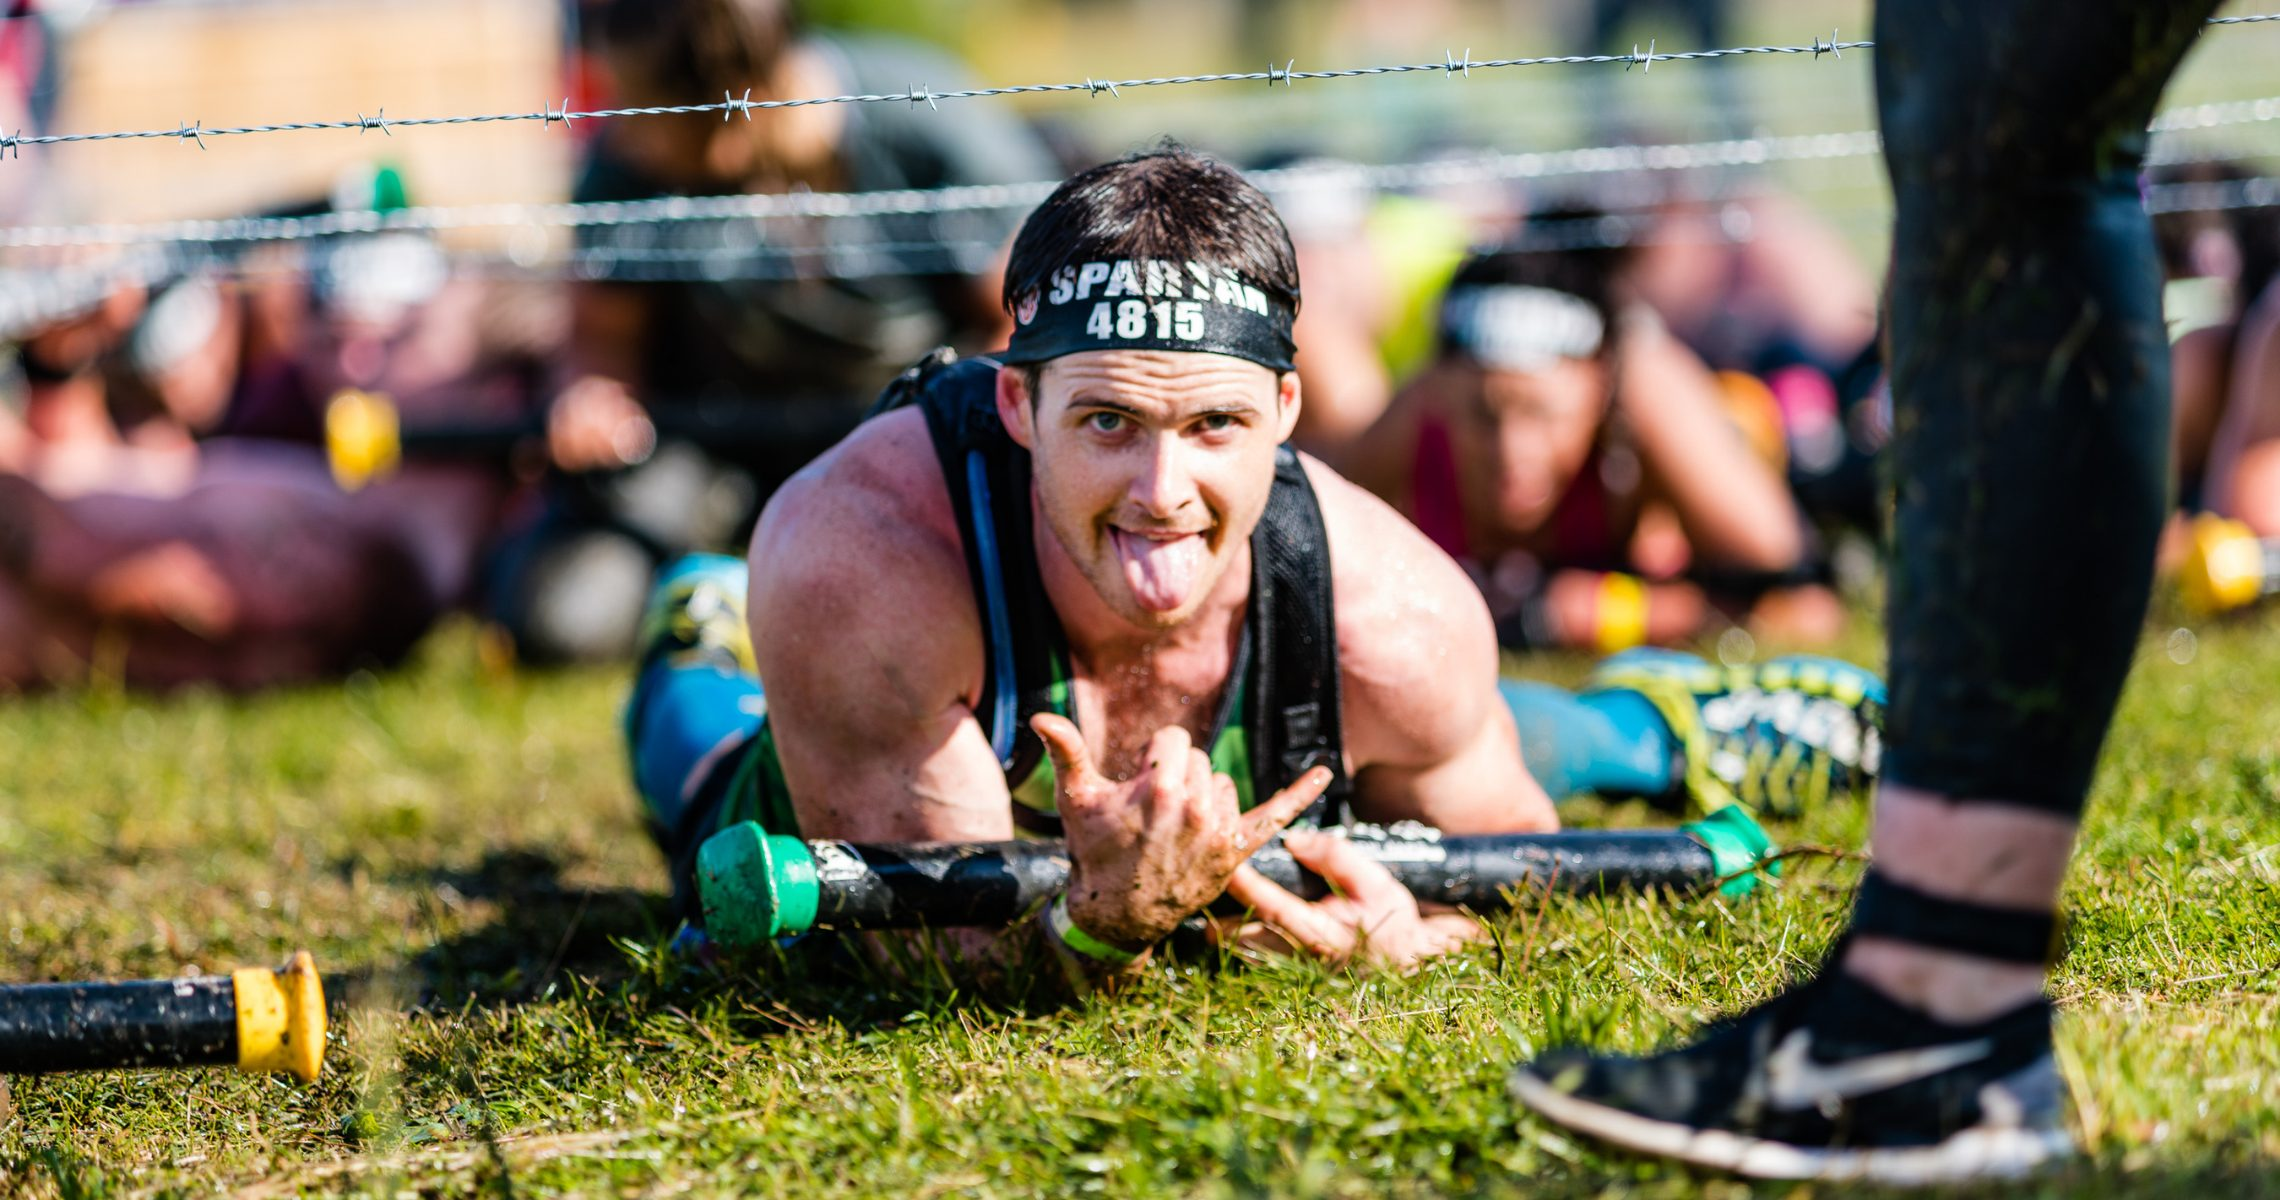 Australia's biggest obstacle course is coming to the Gold Coast in 2020